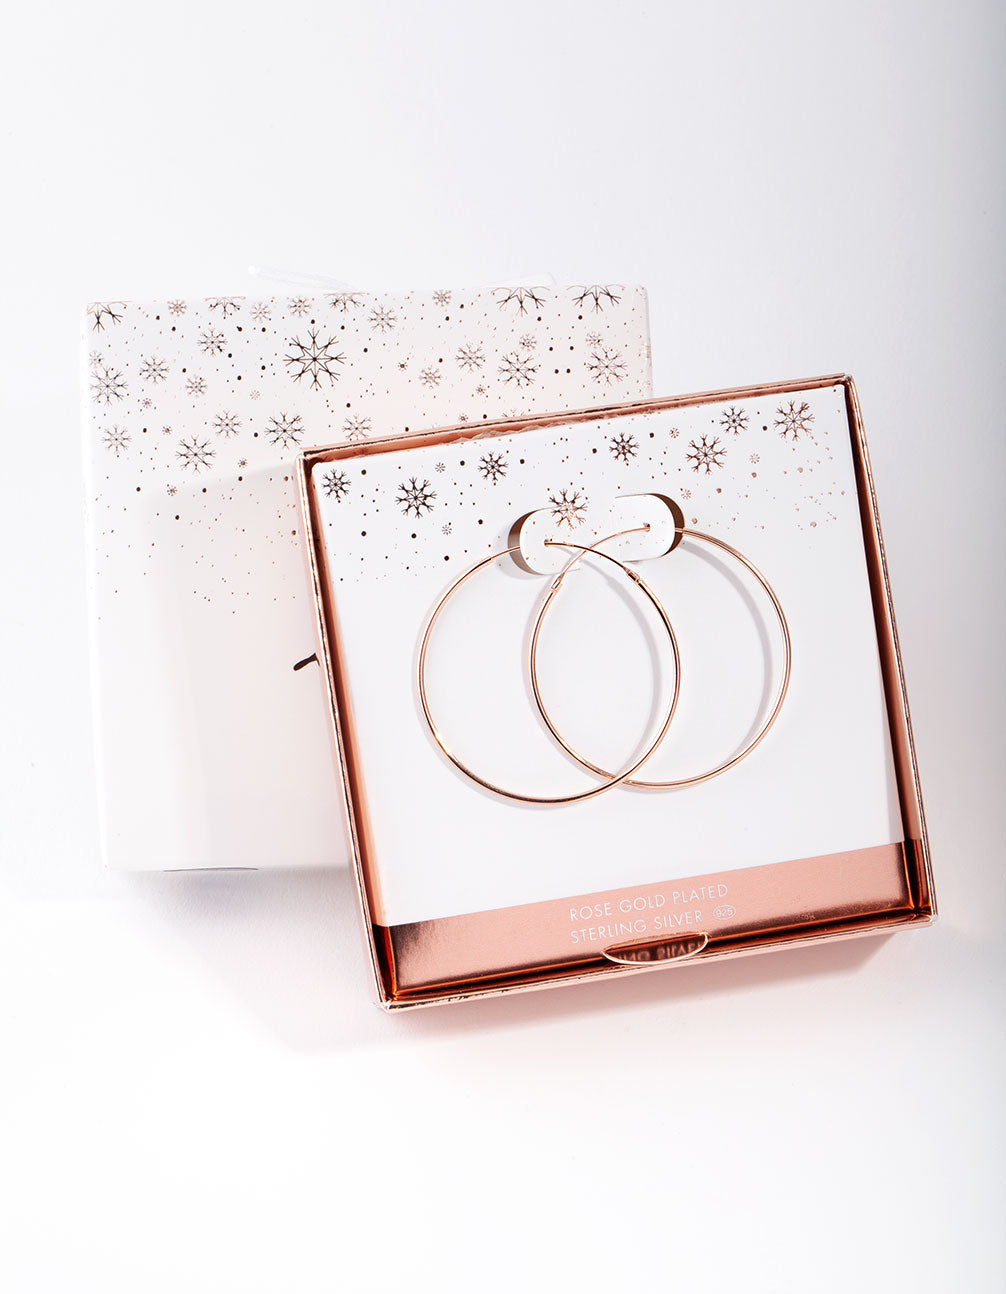 Rose Gold Plated Sterling Silver 40mm Plain Hoop Earring